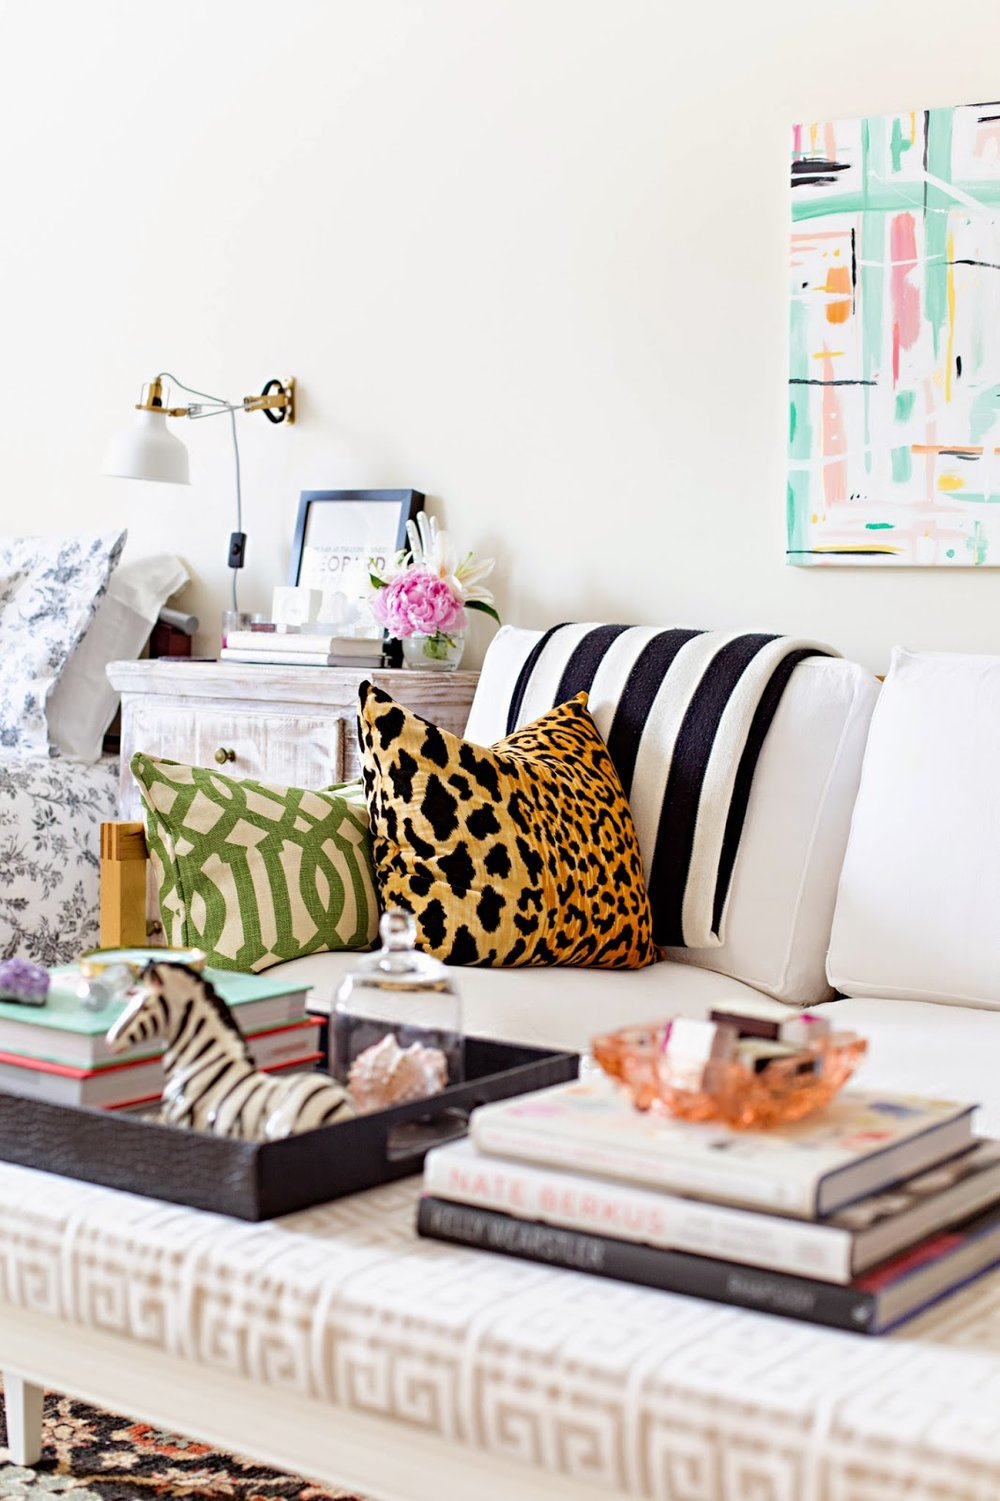 Pictured above: My first apartment, as seen in The Everygirl. Photography by Anna with Love.